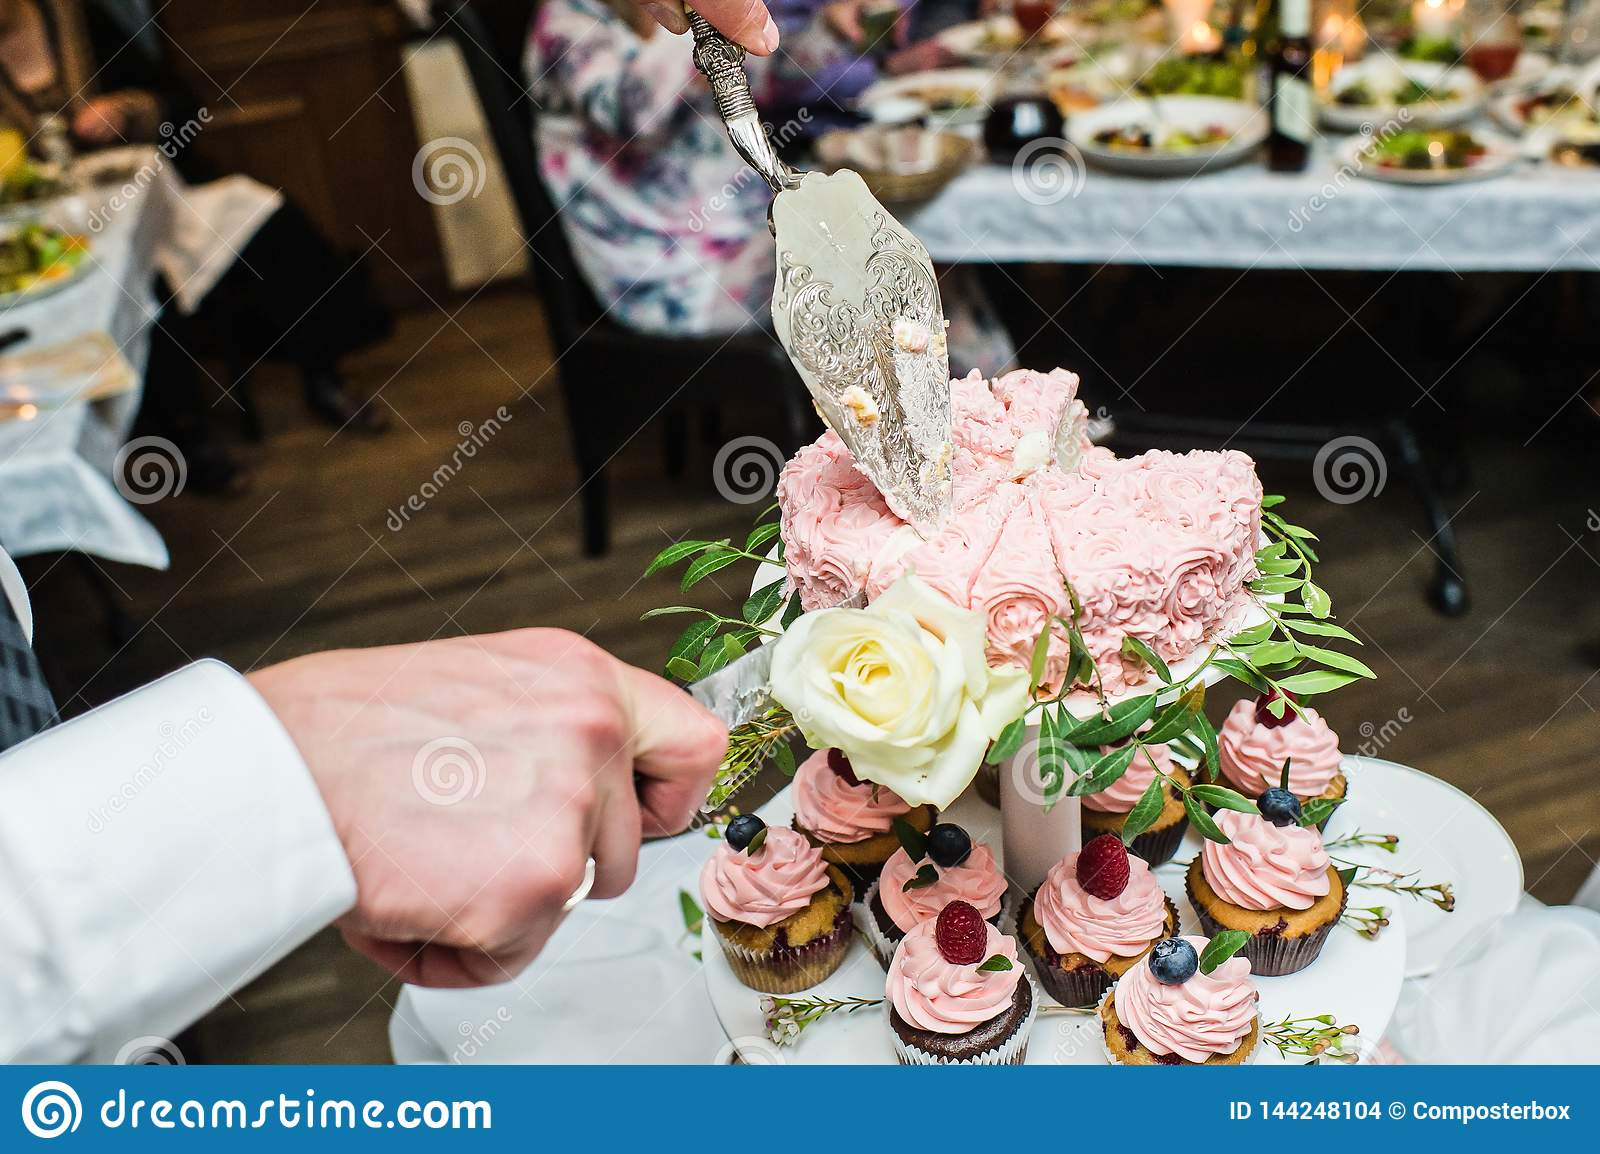 The groom cuts the pink wedding cake.